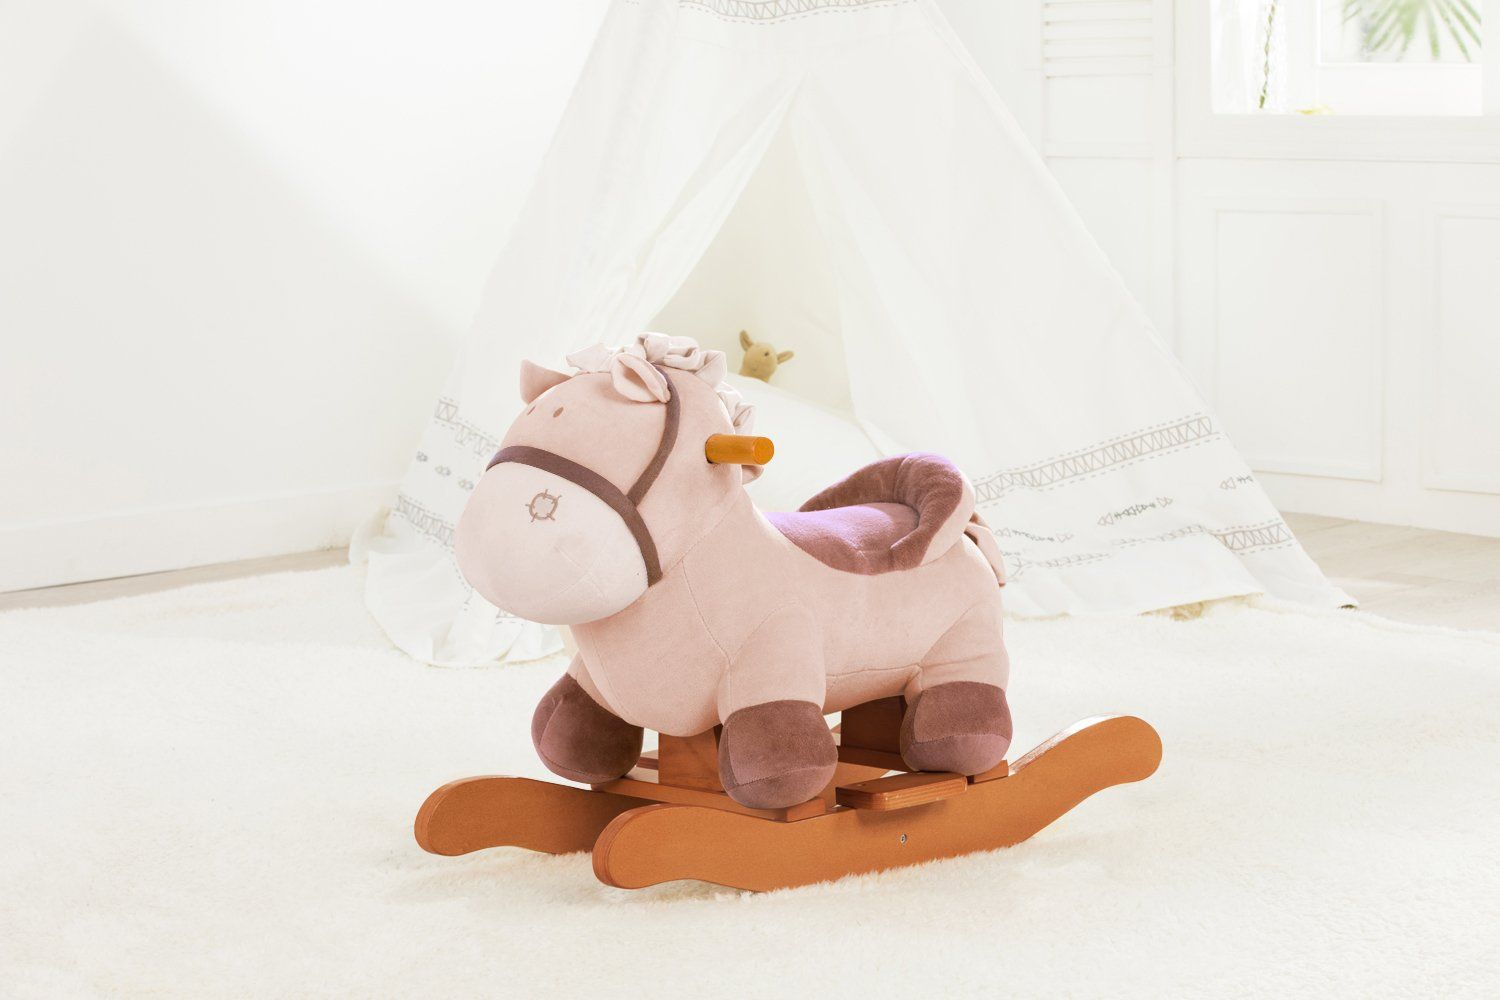 Animal Rocking Chair Massage Outlet Labebe Child Horse Toy Stuffed Rocker Khaki Donkey Printed Wooden For